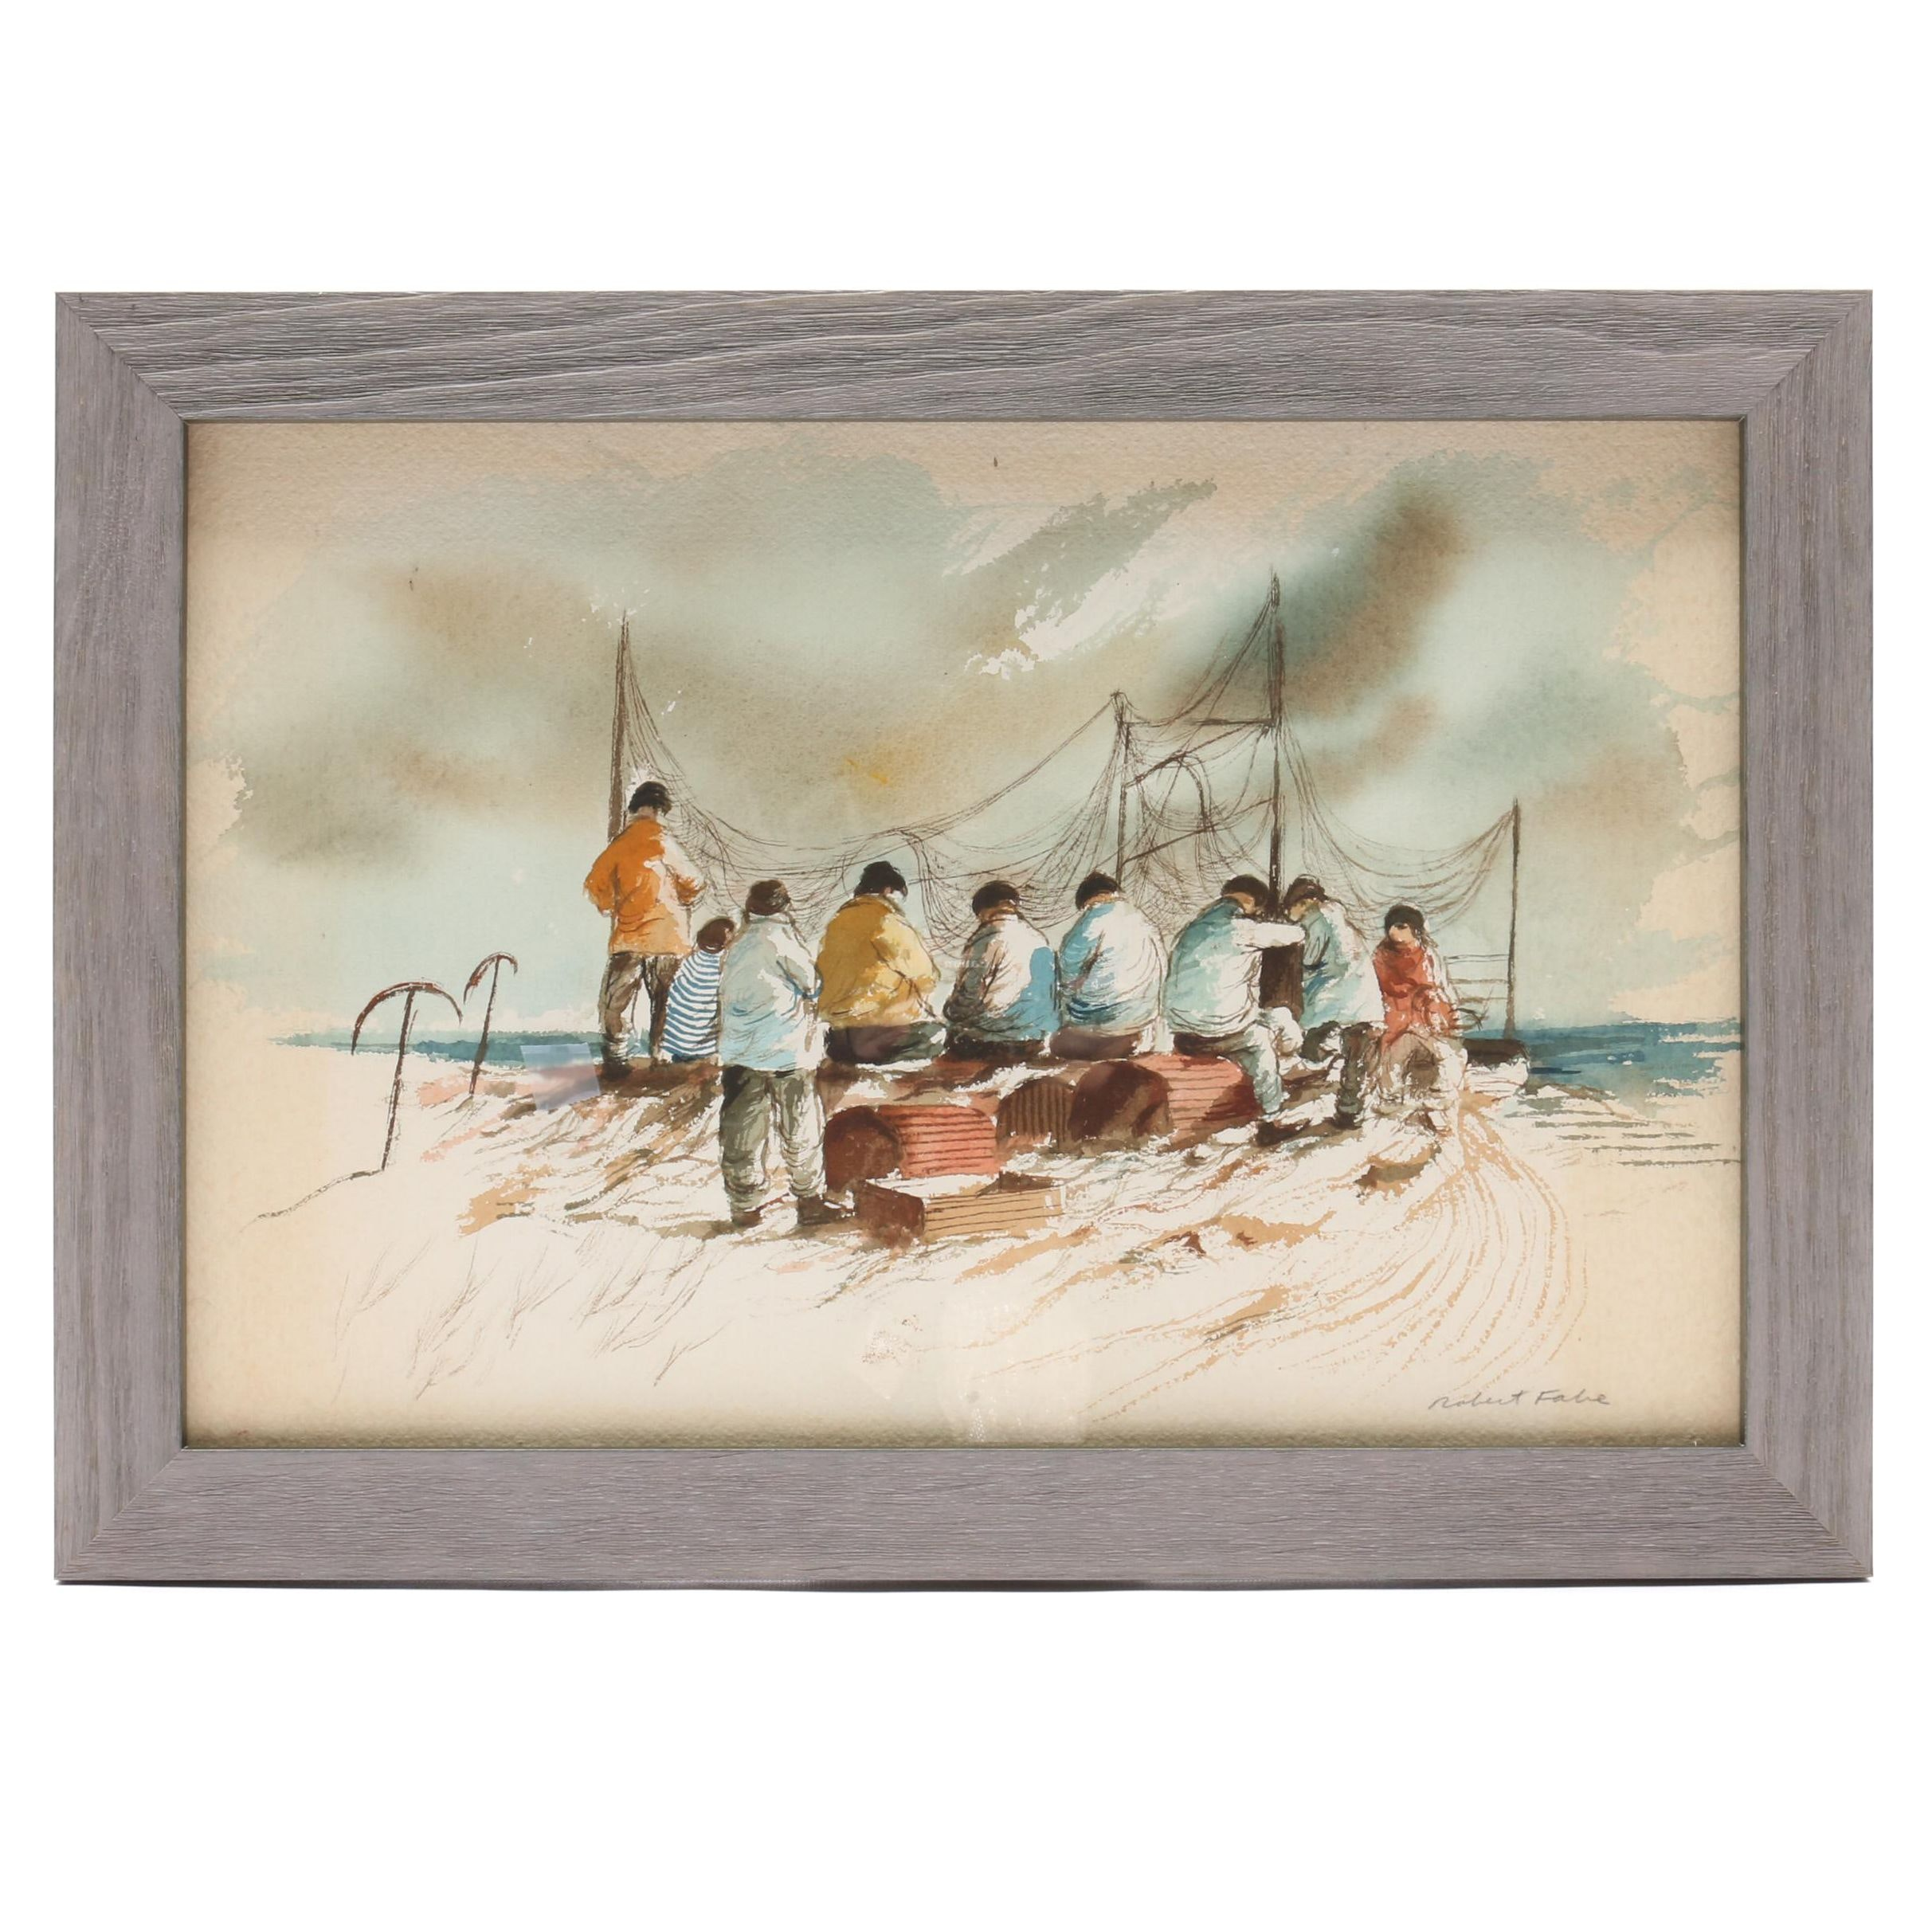 Robert Fabe Watercolor Painting of Fishermen on Shore